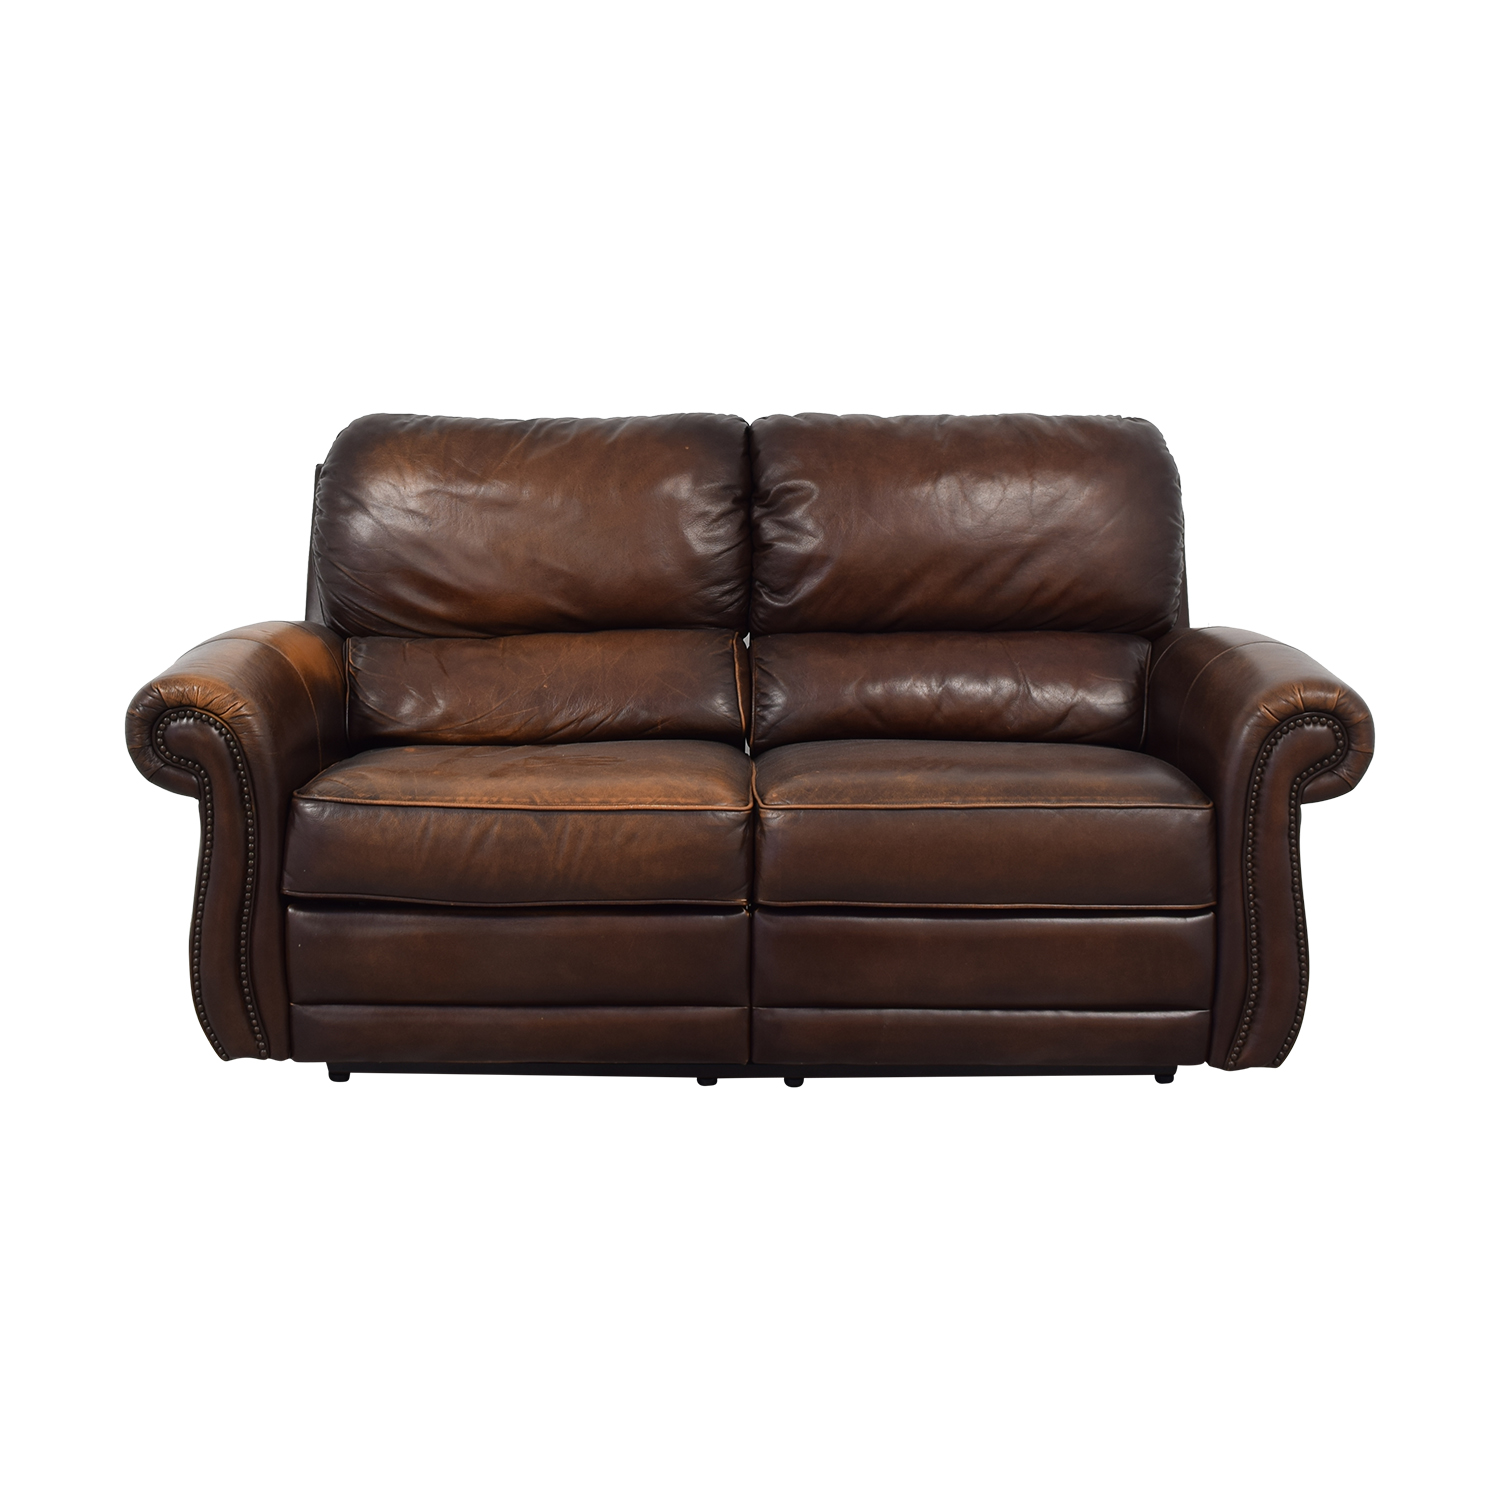 Raymour & Flanigan Leather Loveseat Recliner Raymour & Flanigan